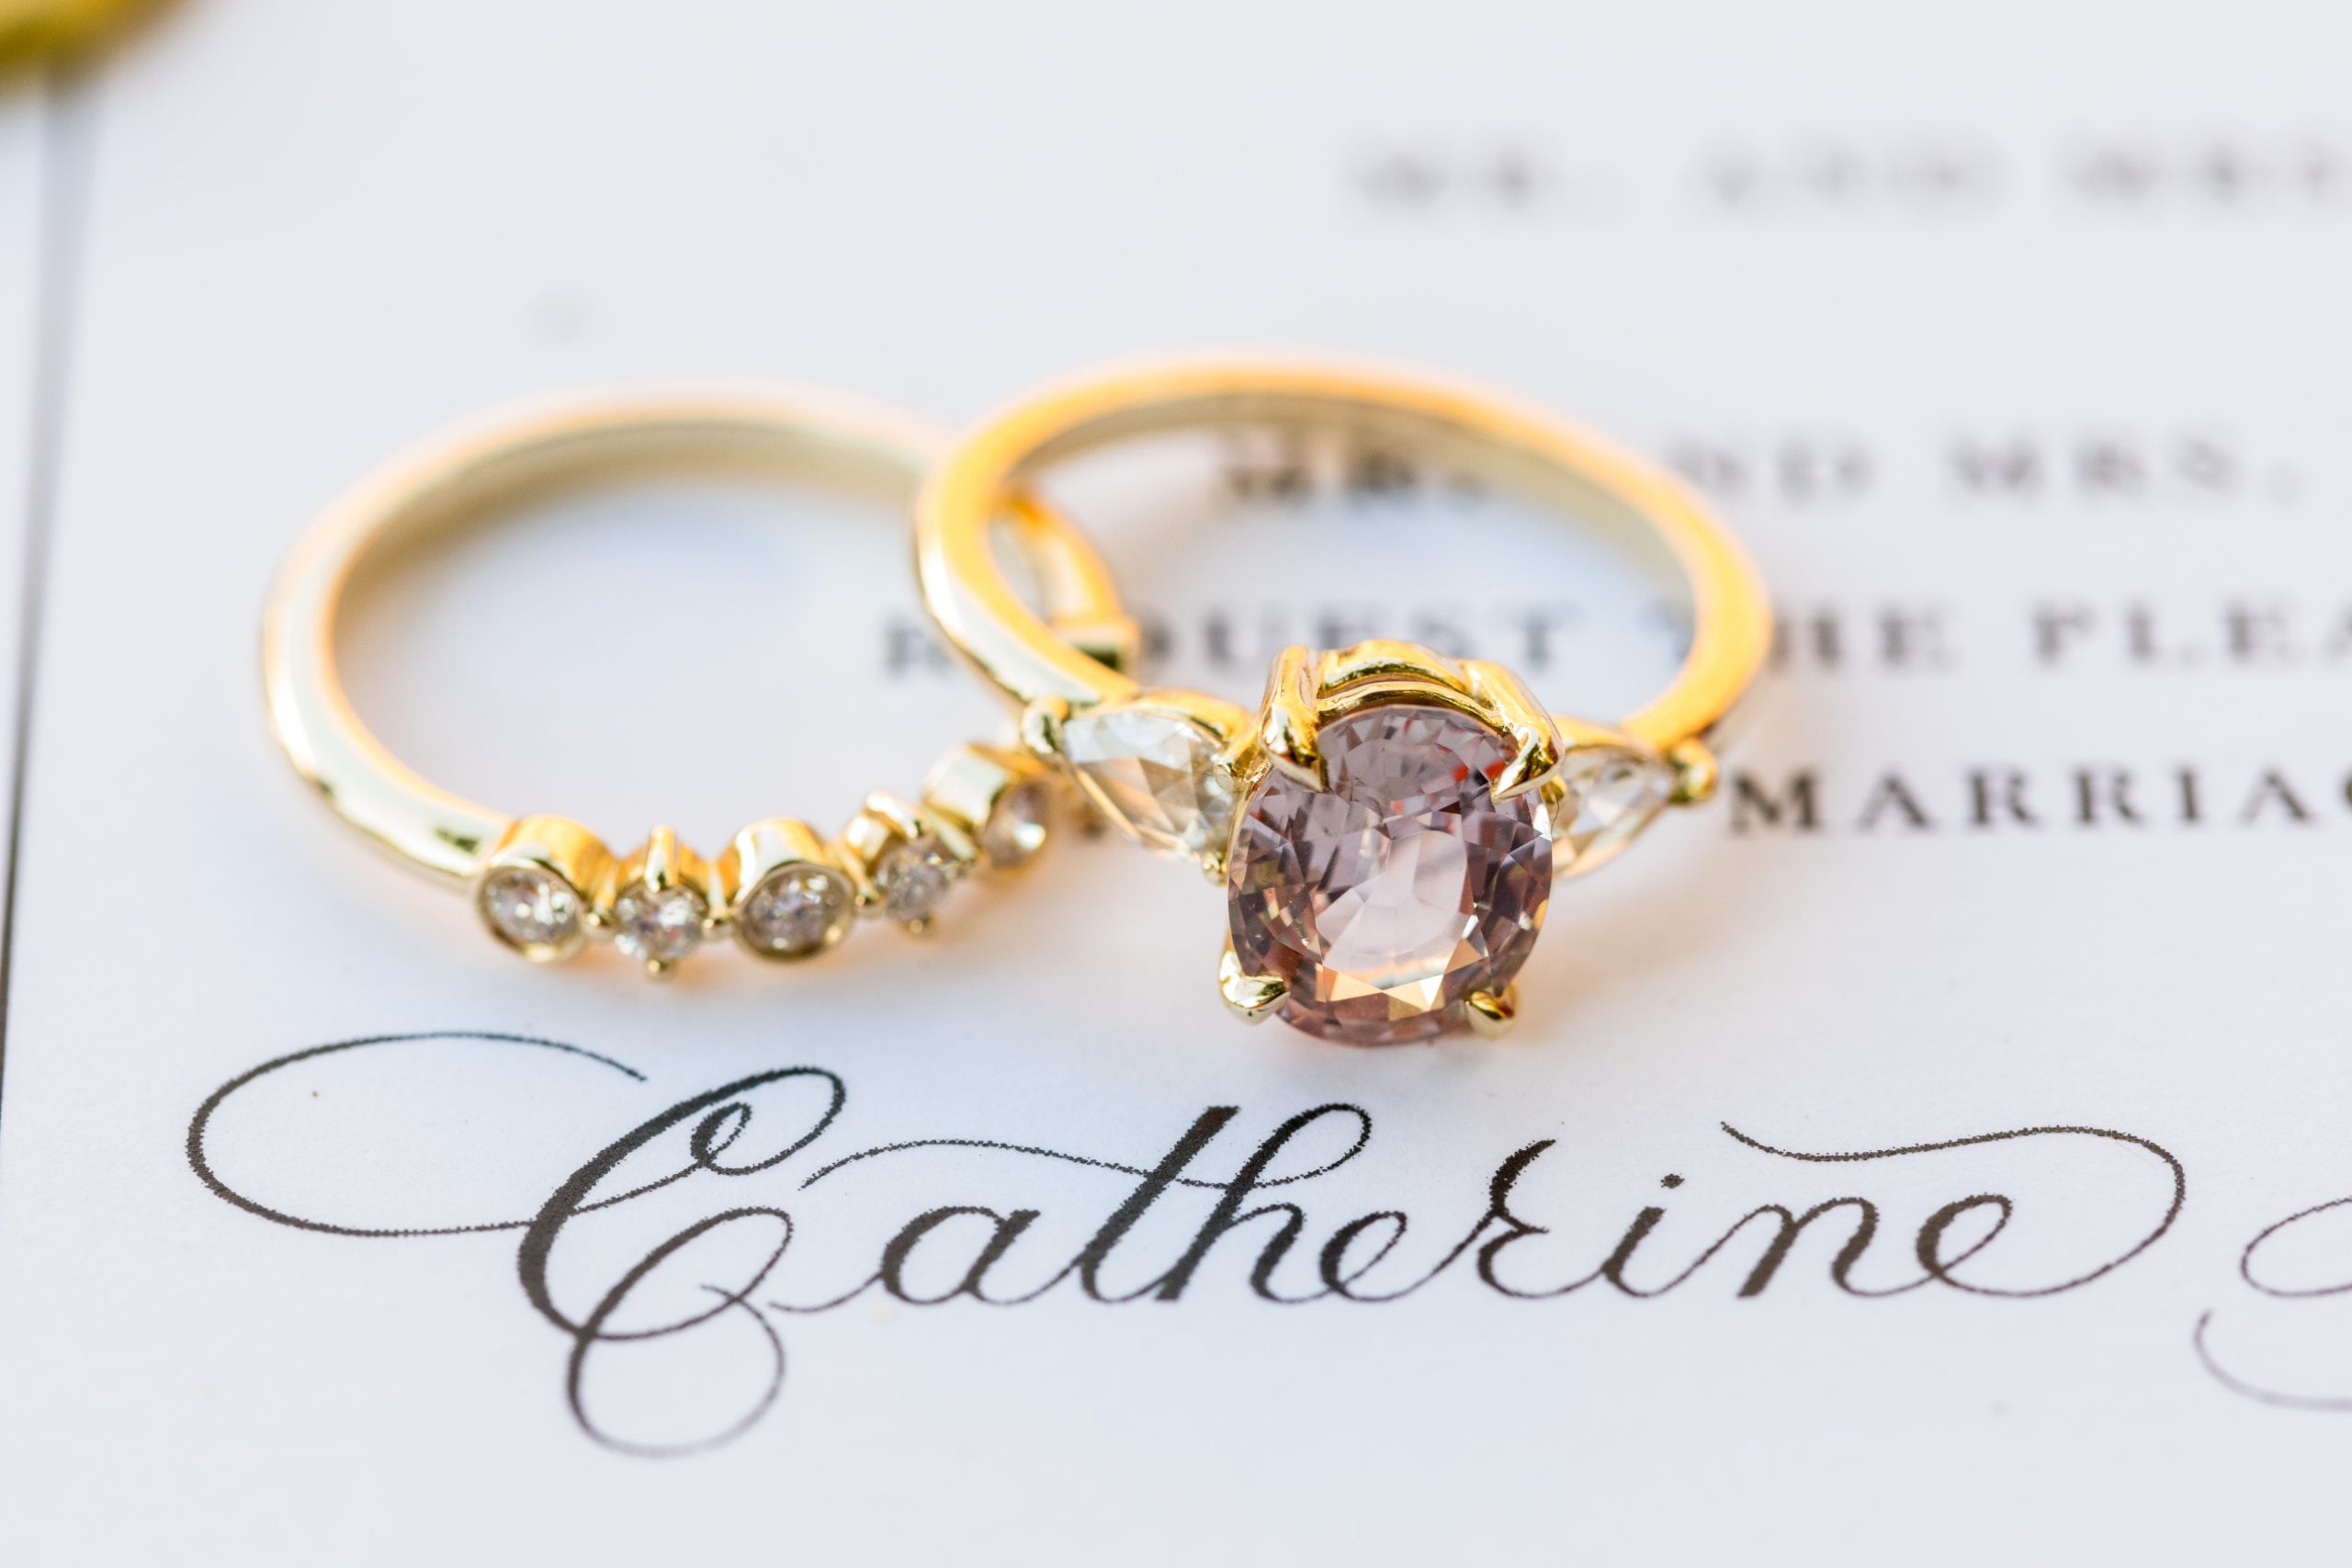 Catherine's ring she is to say I do with at the Michener Museum styled urban contemporary shoot for Ashley Gerrity Photography this past Summer. Featured on Dream Weddings.